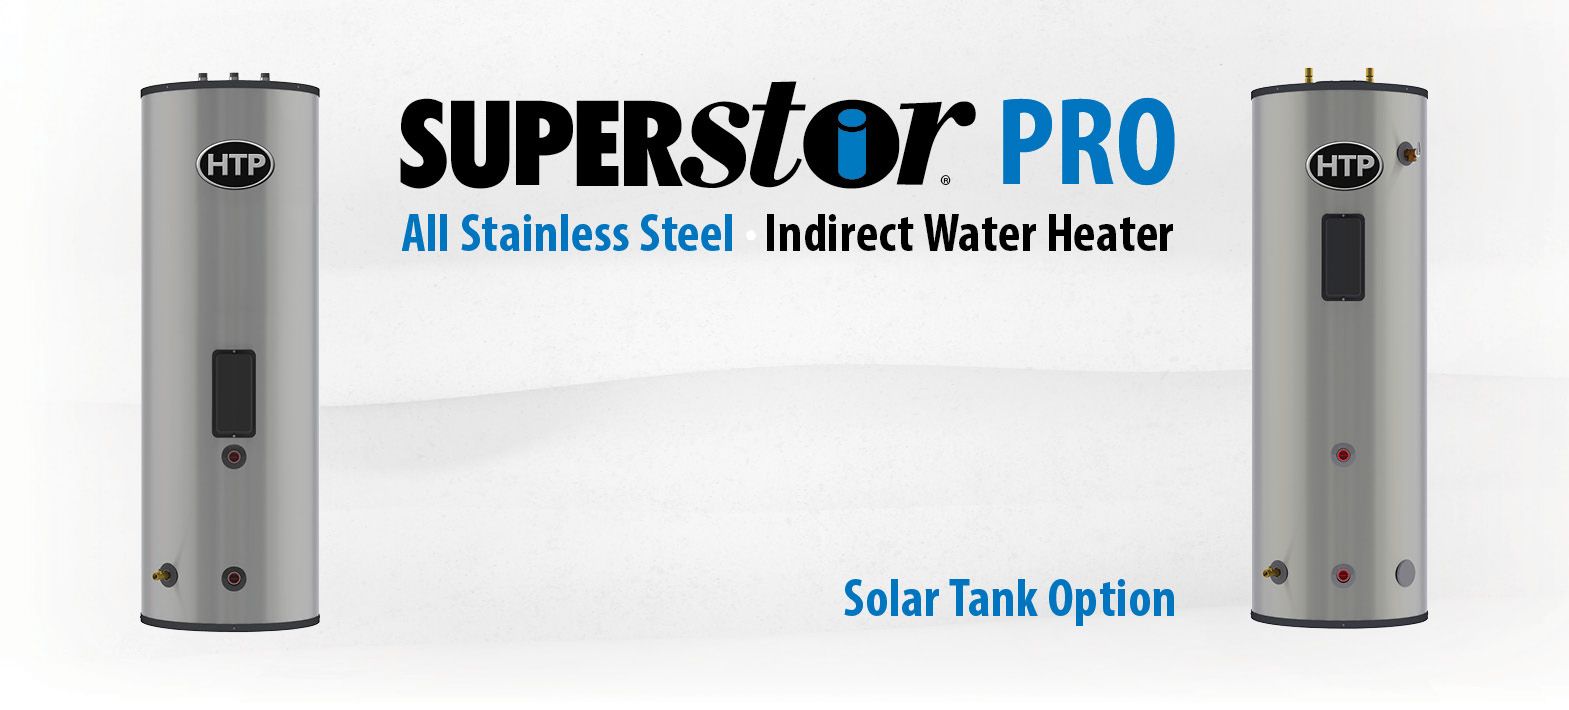 SuperStor Pro Water Heater